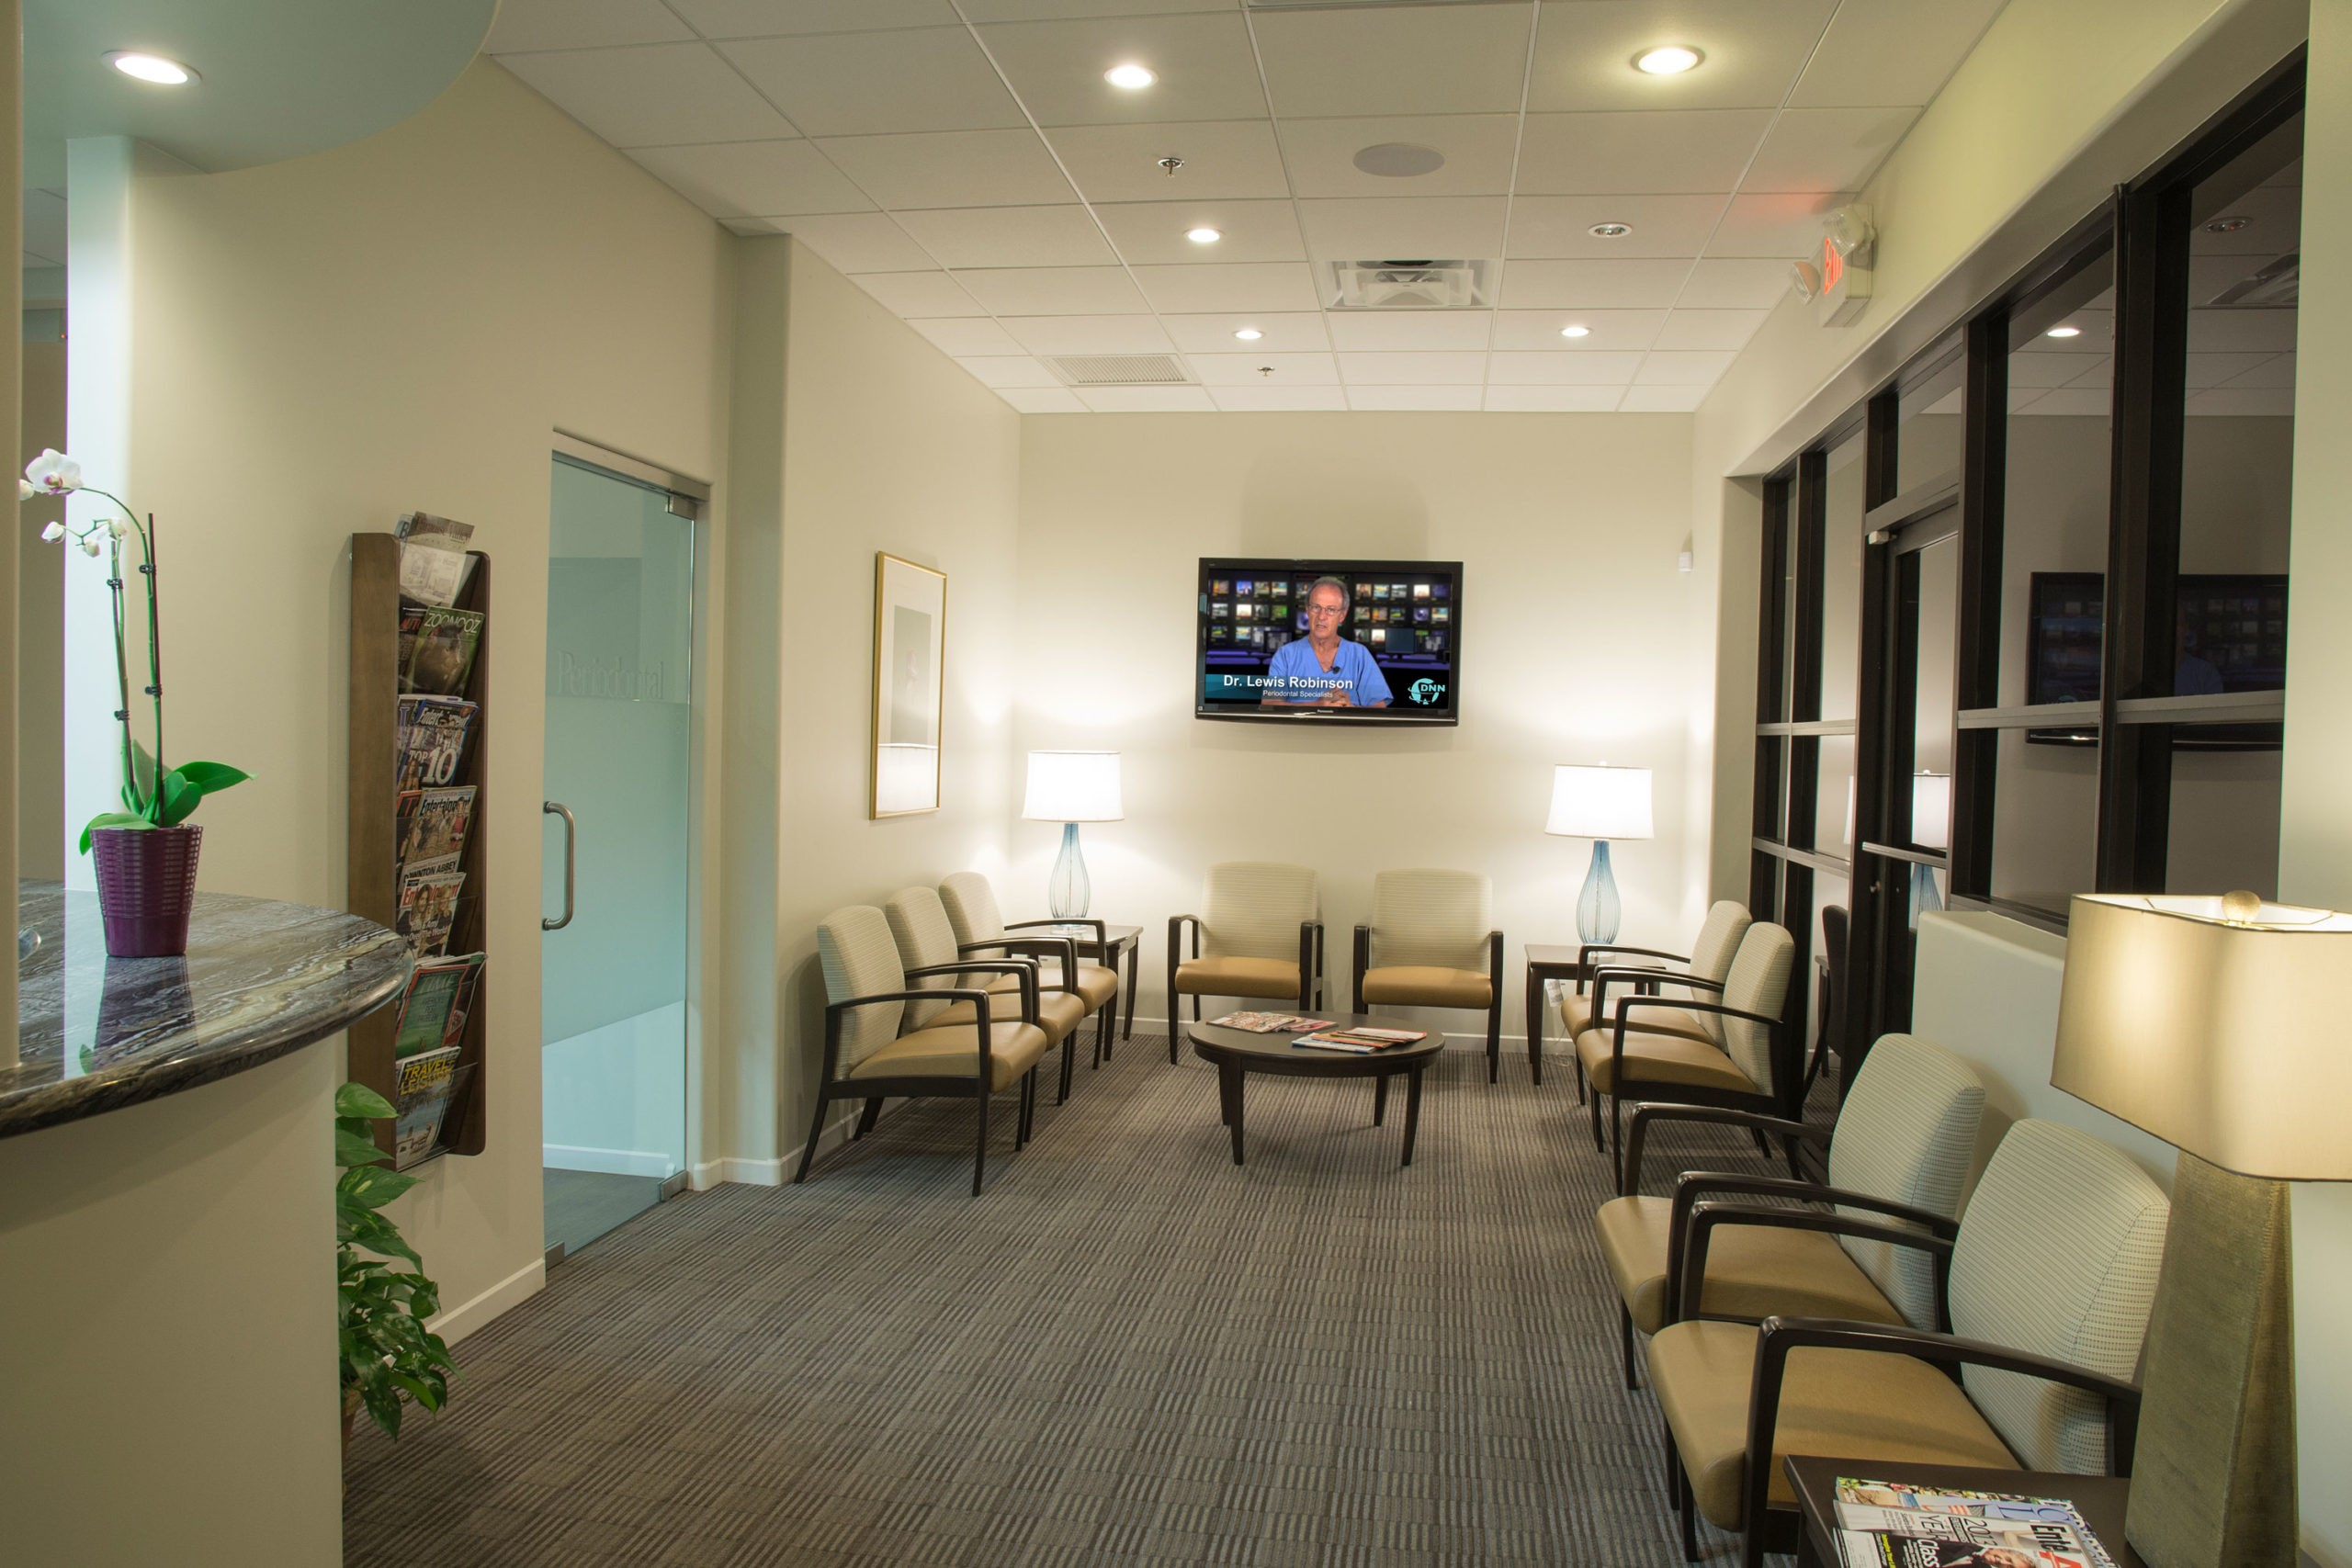 Advanced Dental Implants & Periodontology Scottsdale Arizona Waiting Area